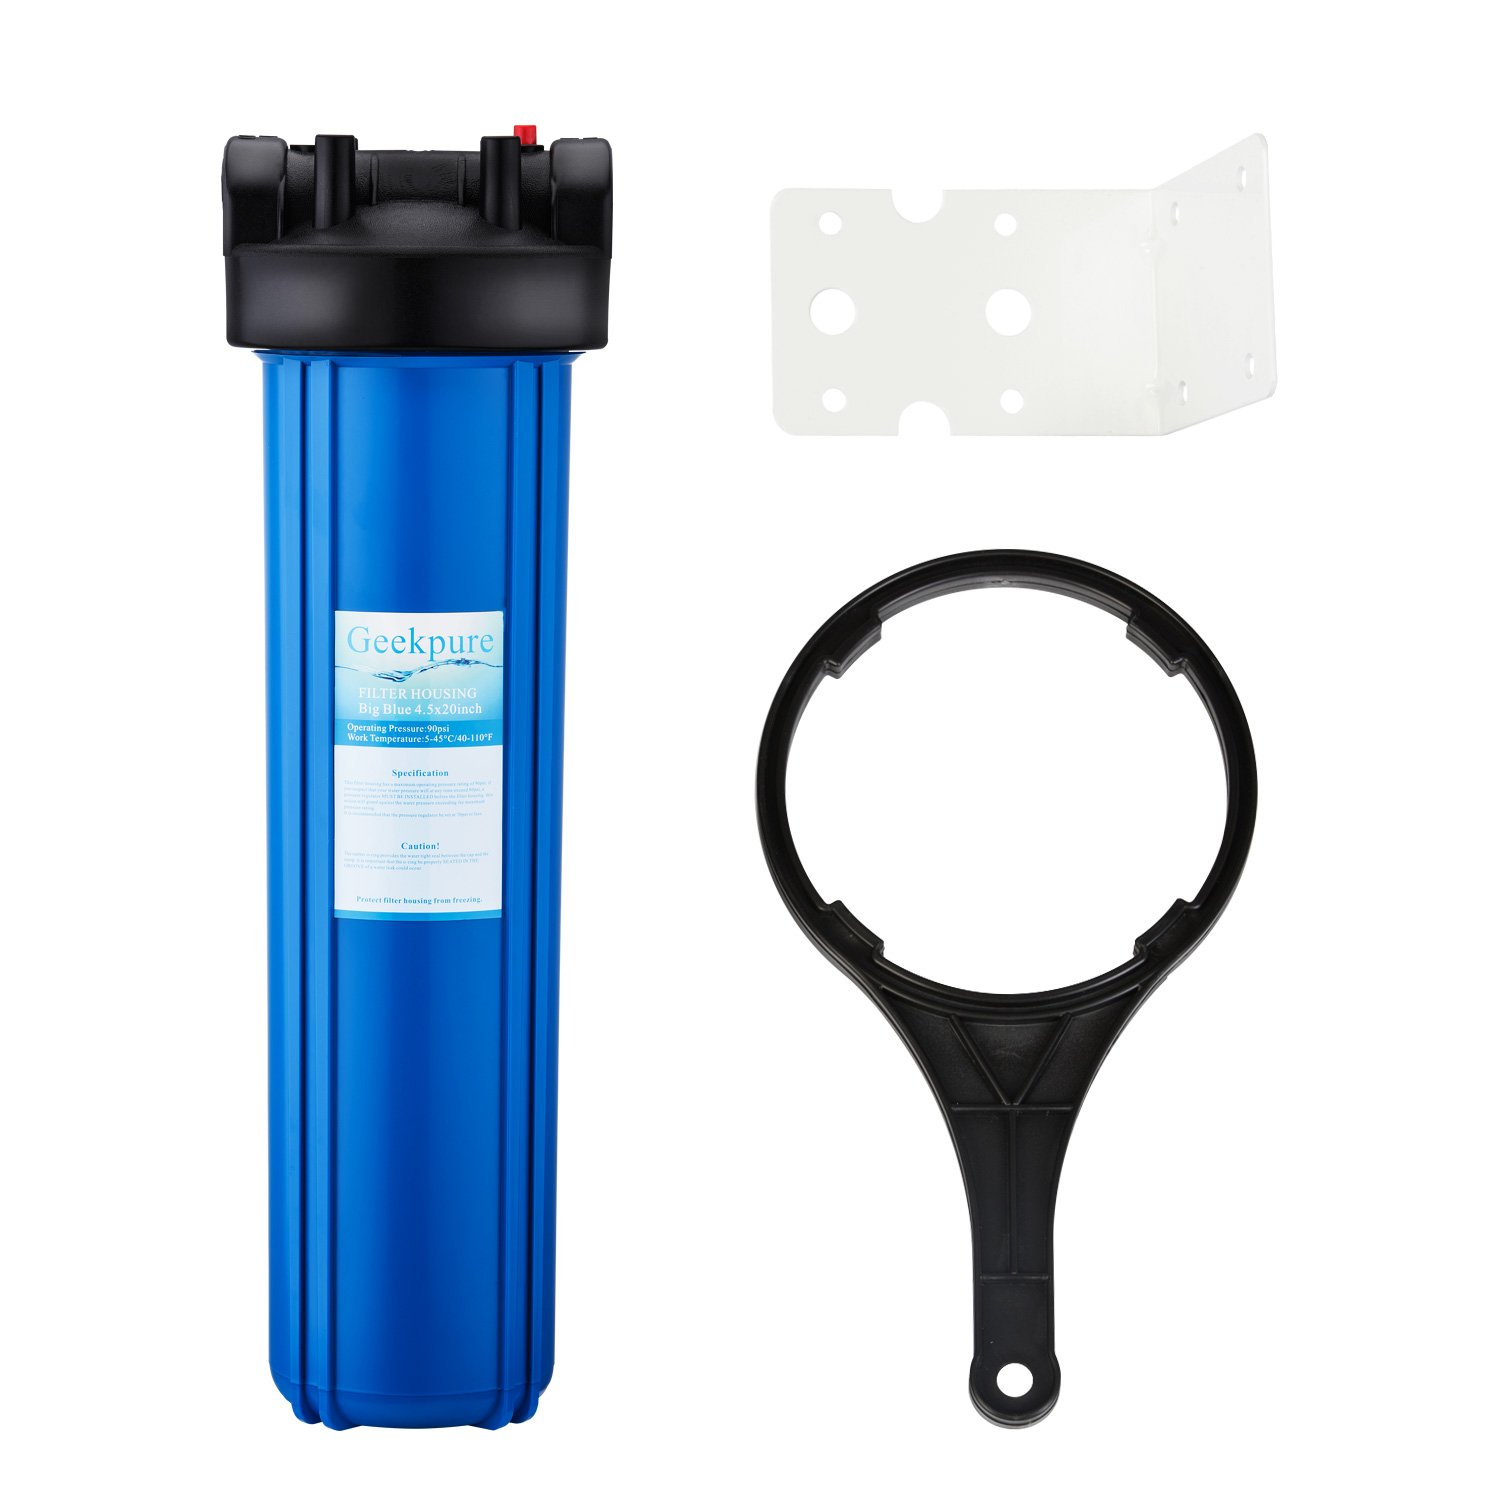 Geekpure Whole House 20 Inch Big Blue Water Filter Housing 1-Inch Inlet/Outlet with Wrench and Bracket -4.5 Inch x 20 Inch -Blue Color by Geekpure